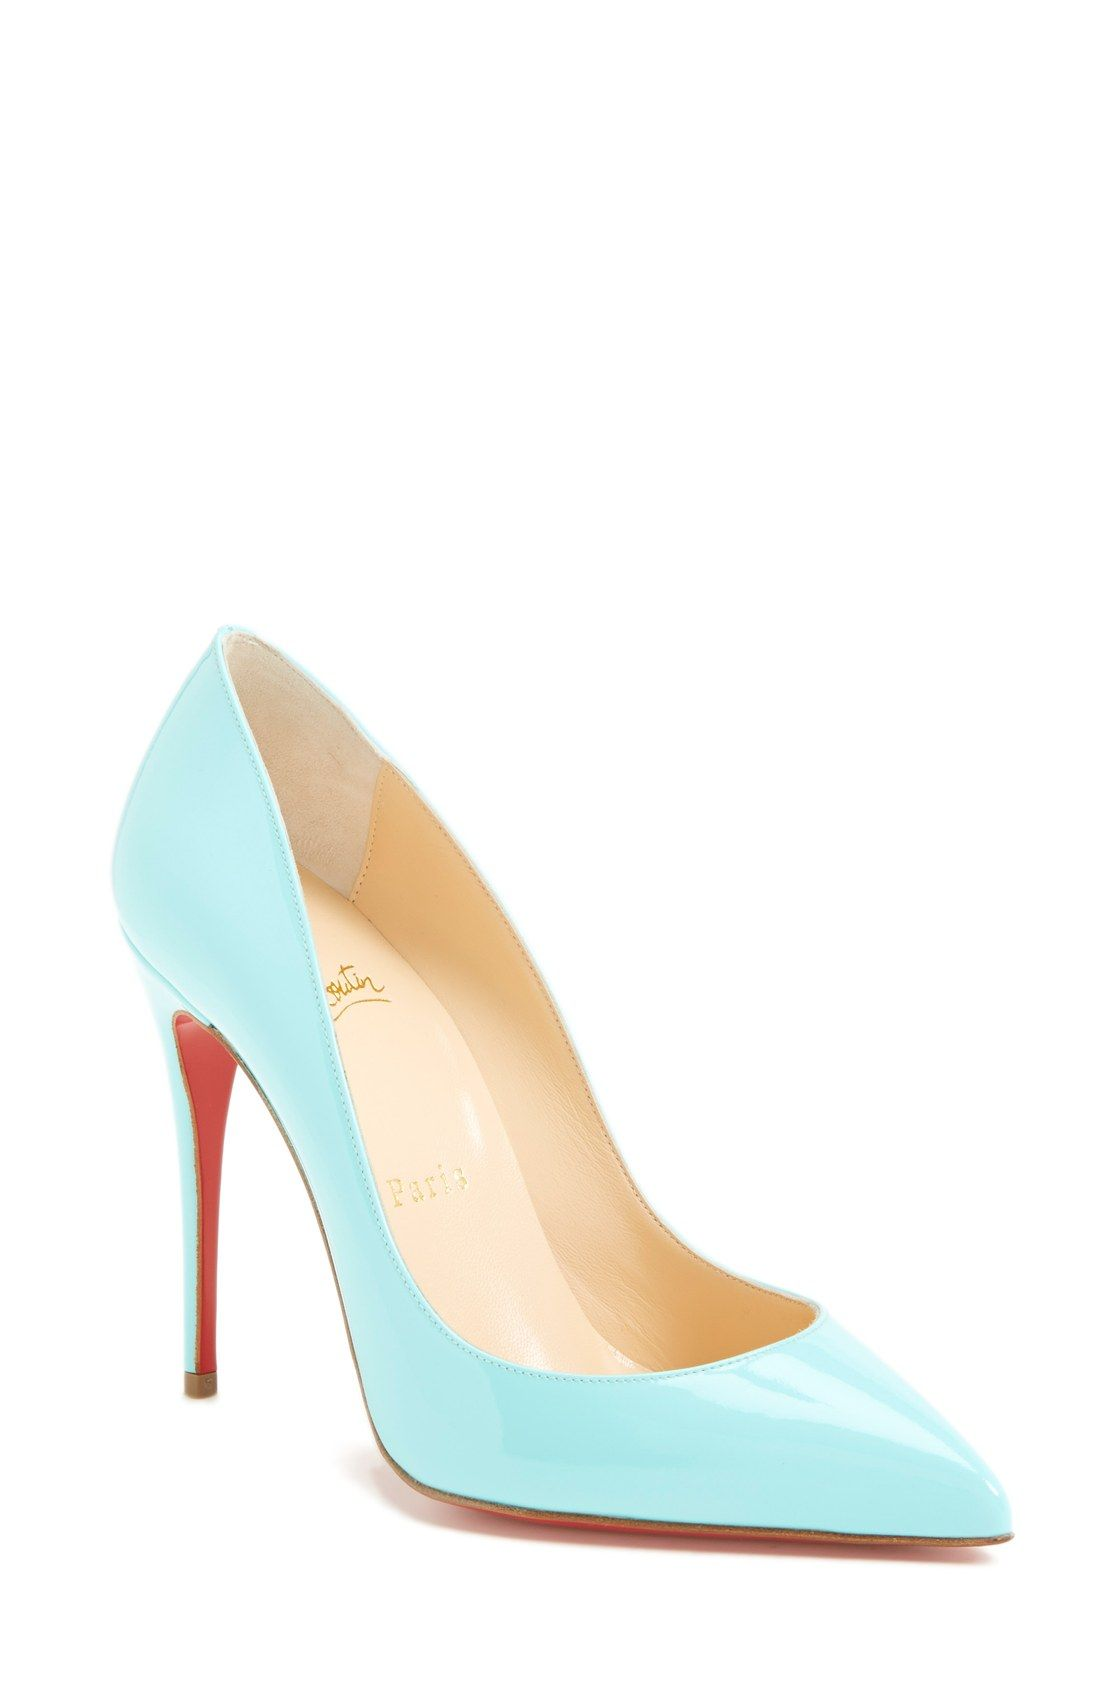 9b6dea84168 Oh, so beautiful | Light blue Christian Louboutin pumps. | Our ...